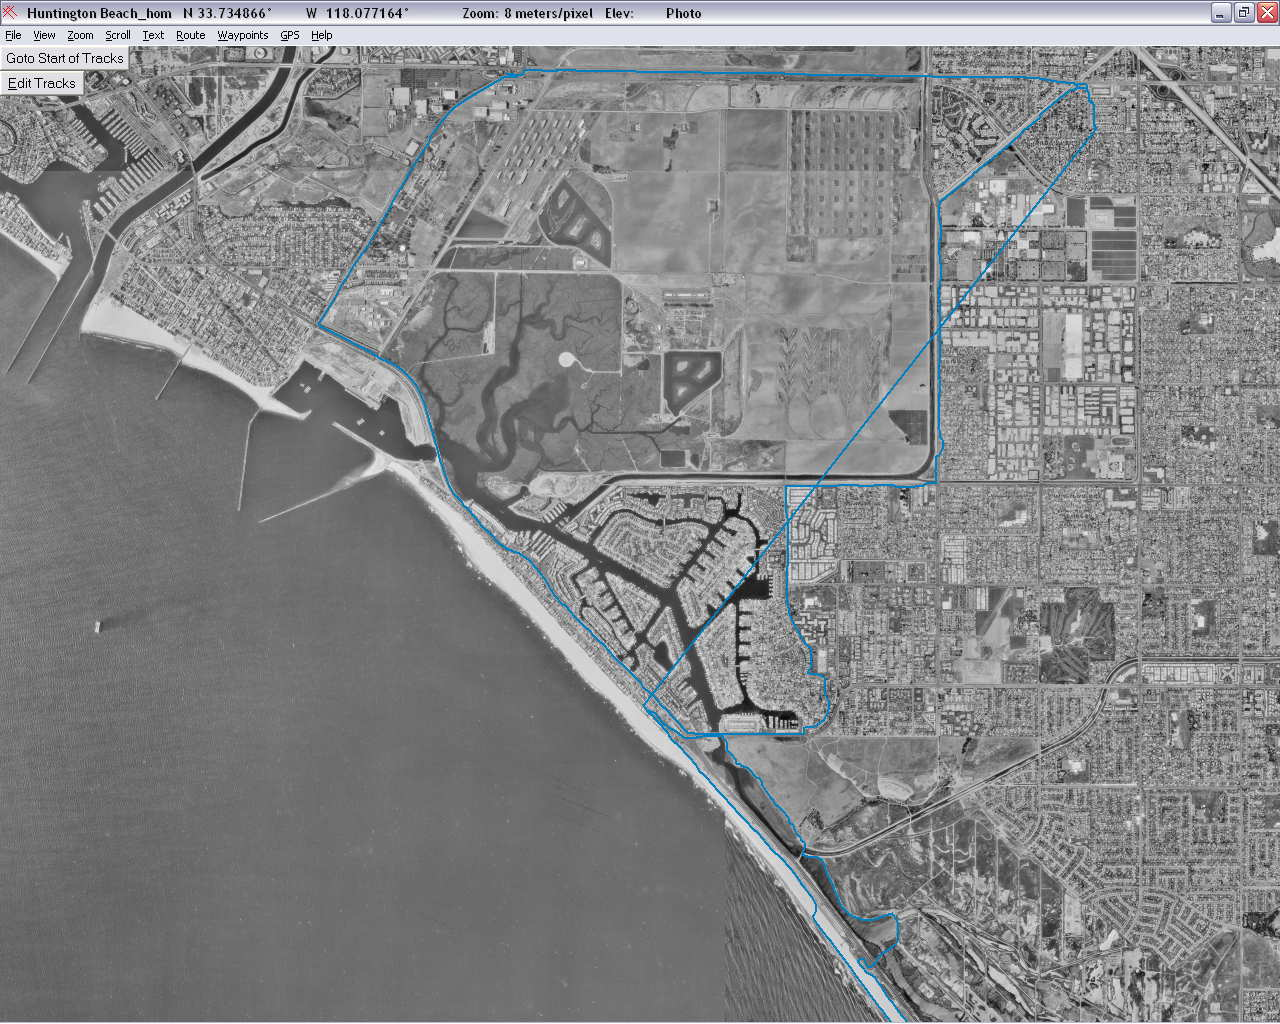 Current Image is BFelsted/Long_Local_Loop__Bolsa_Chica_Photo.jpg Clicking here will display Long_Local_Loop__Bolsa_Chica_2_Runs.jpg